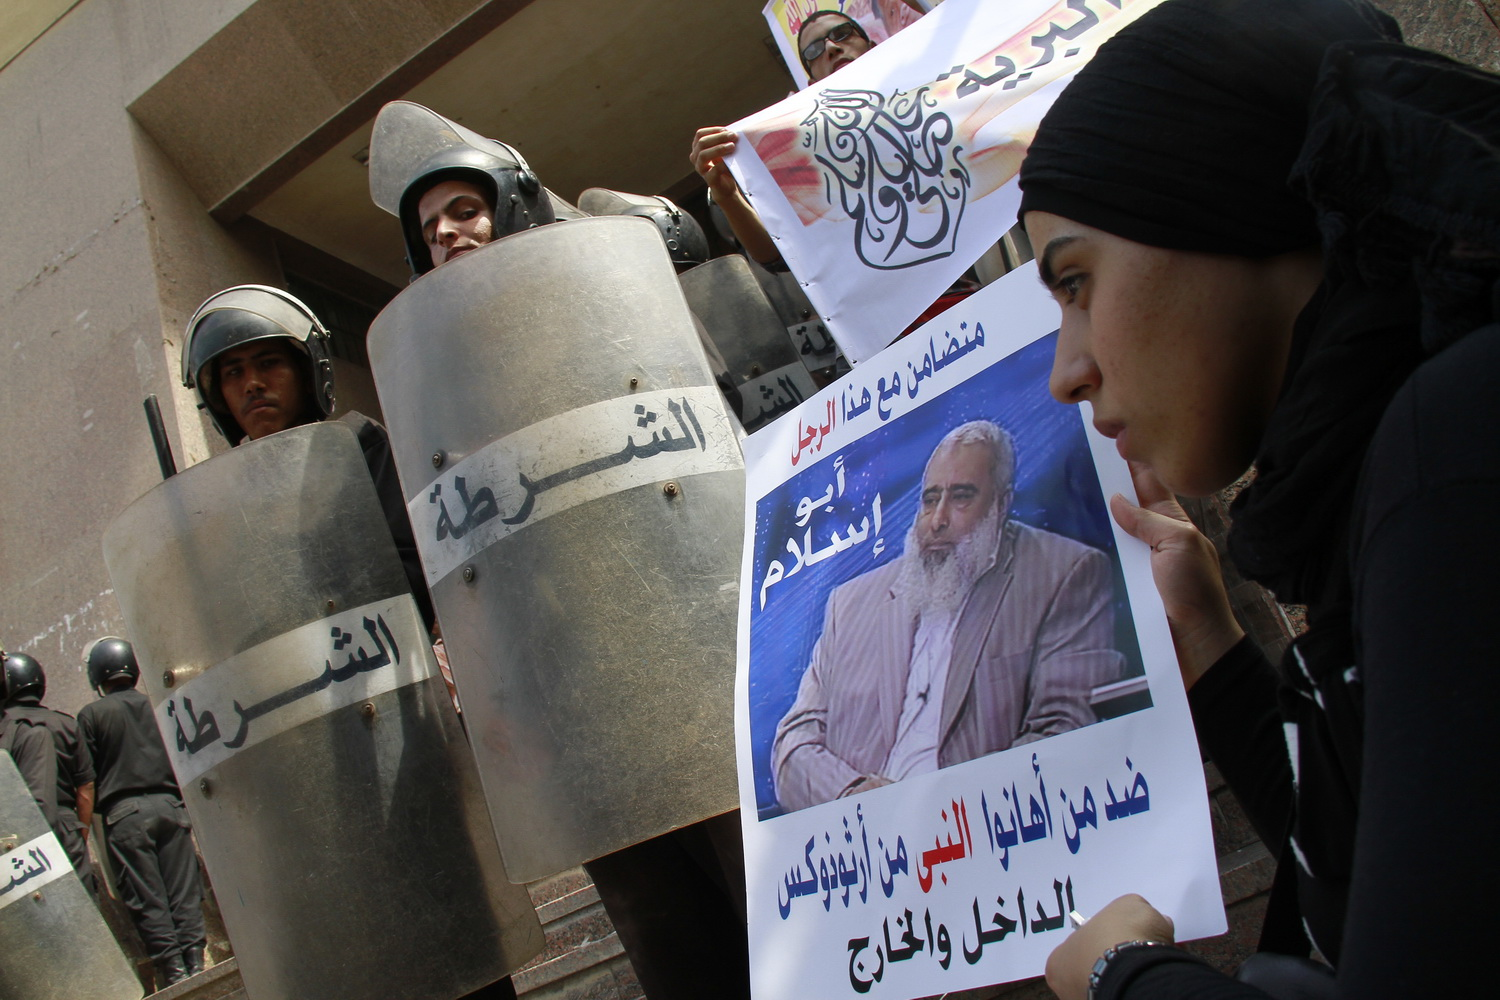 Protesters demonstrate in front of a previous court hearing against Abu Islam. (File photo/ Mohamed Omar)